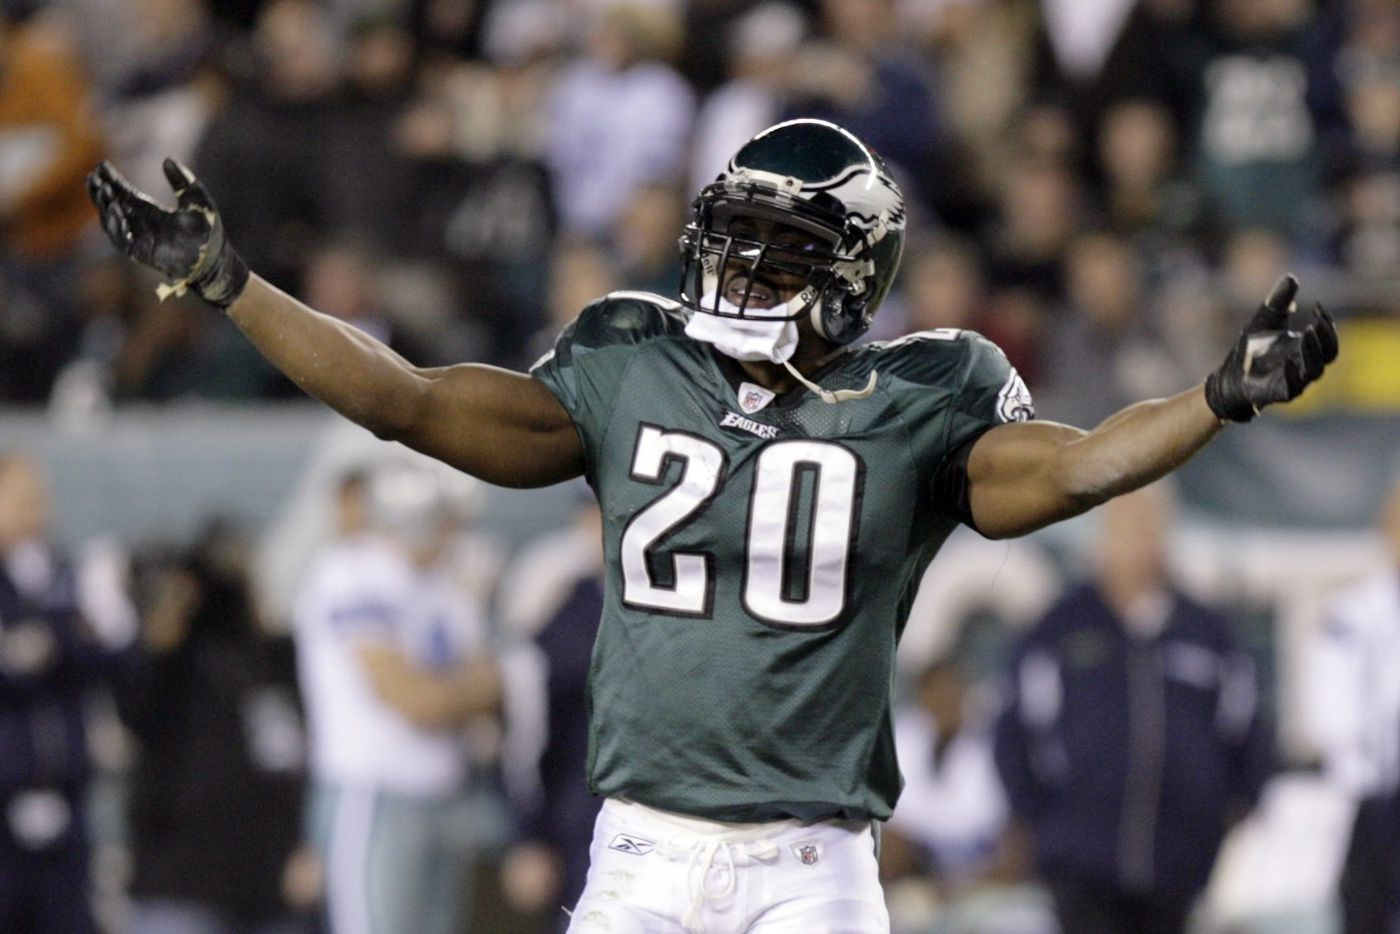 ab702663a07 Dawkins celebrates during the Eagles' beatdown of their division rival in  2008, which would